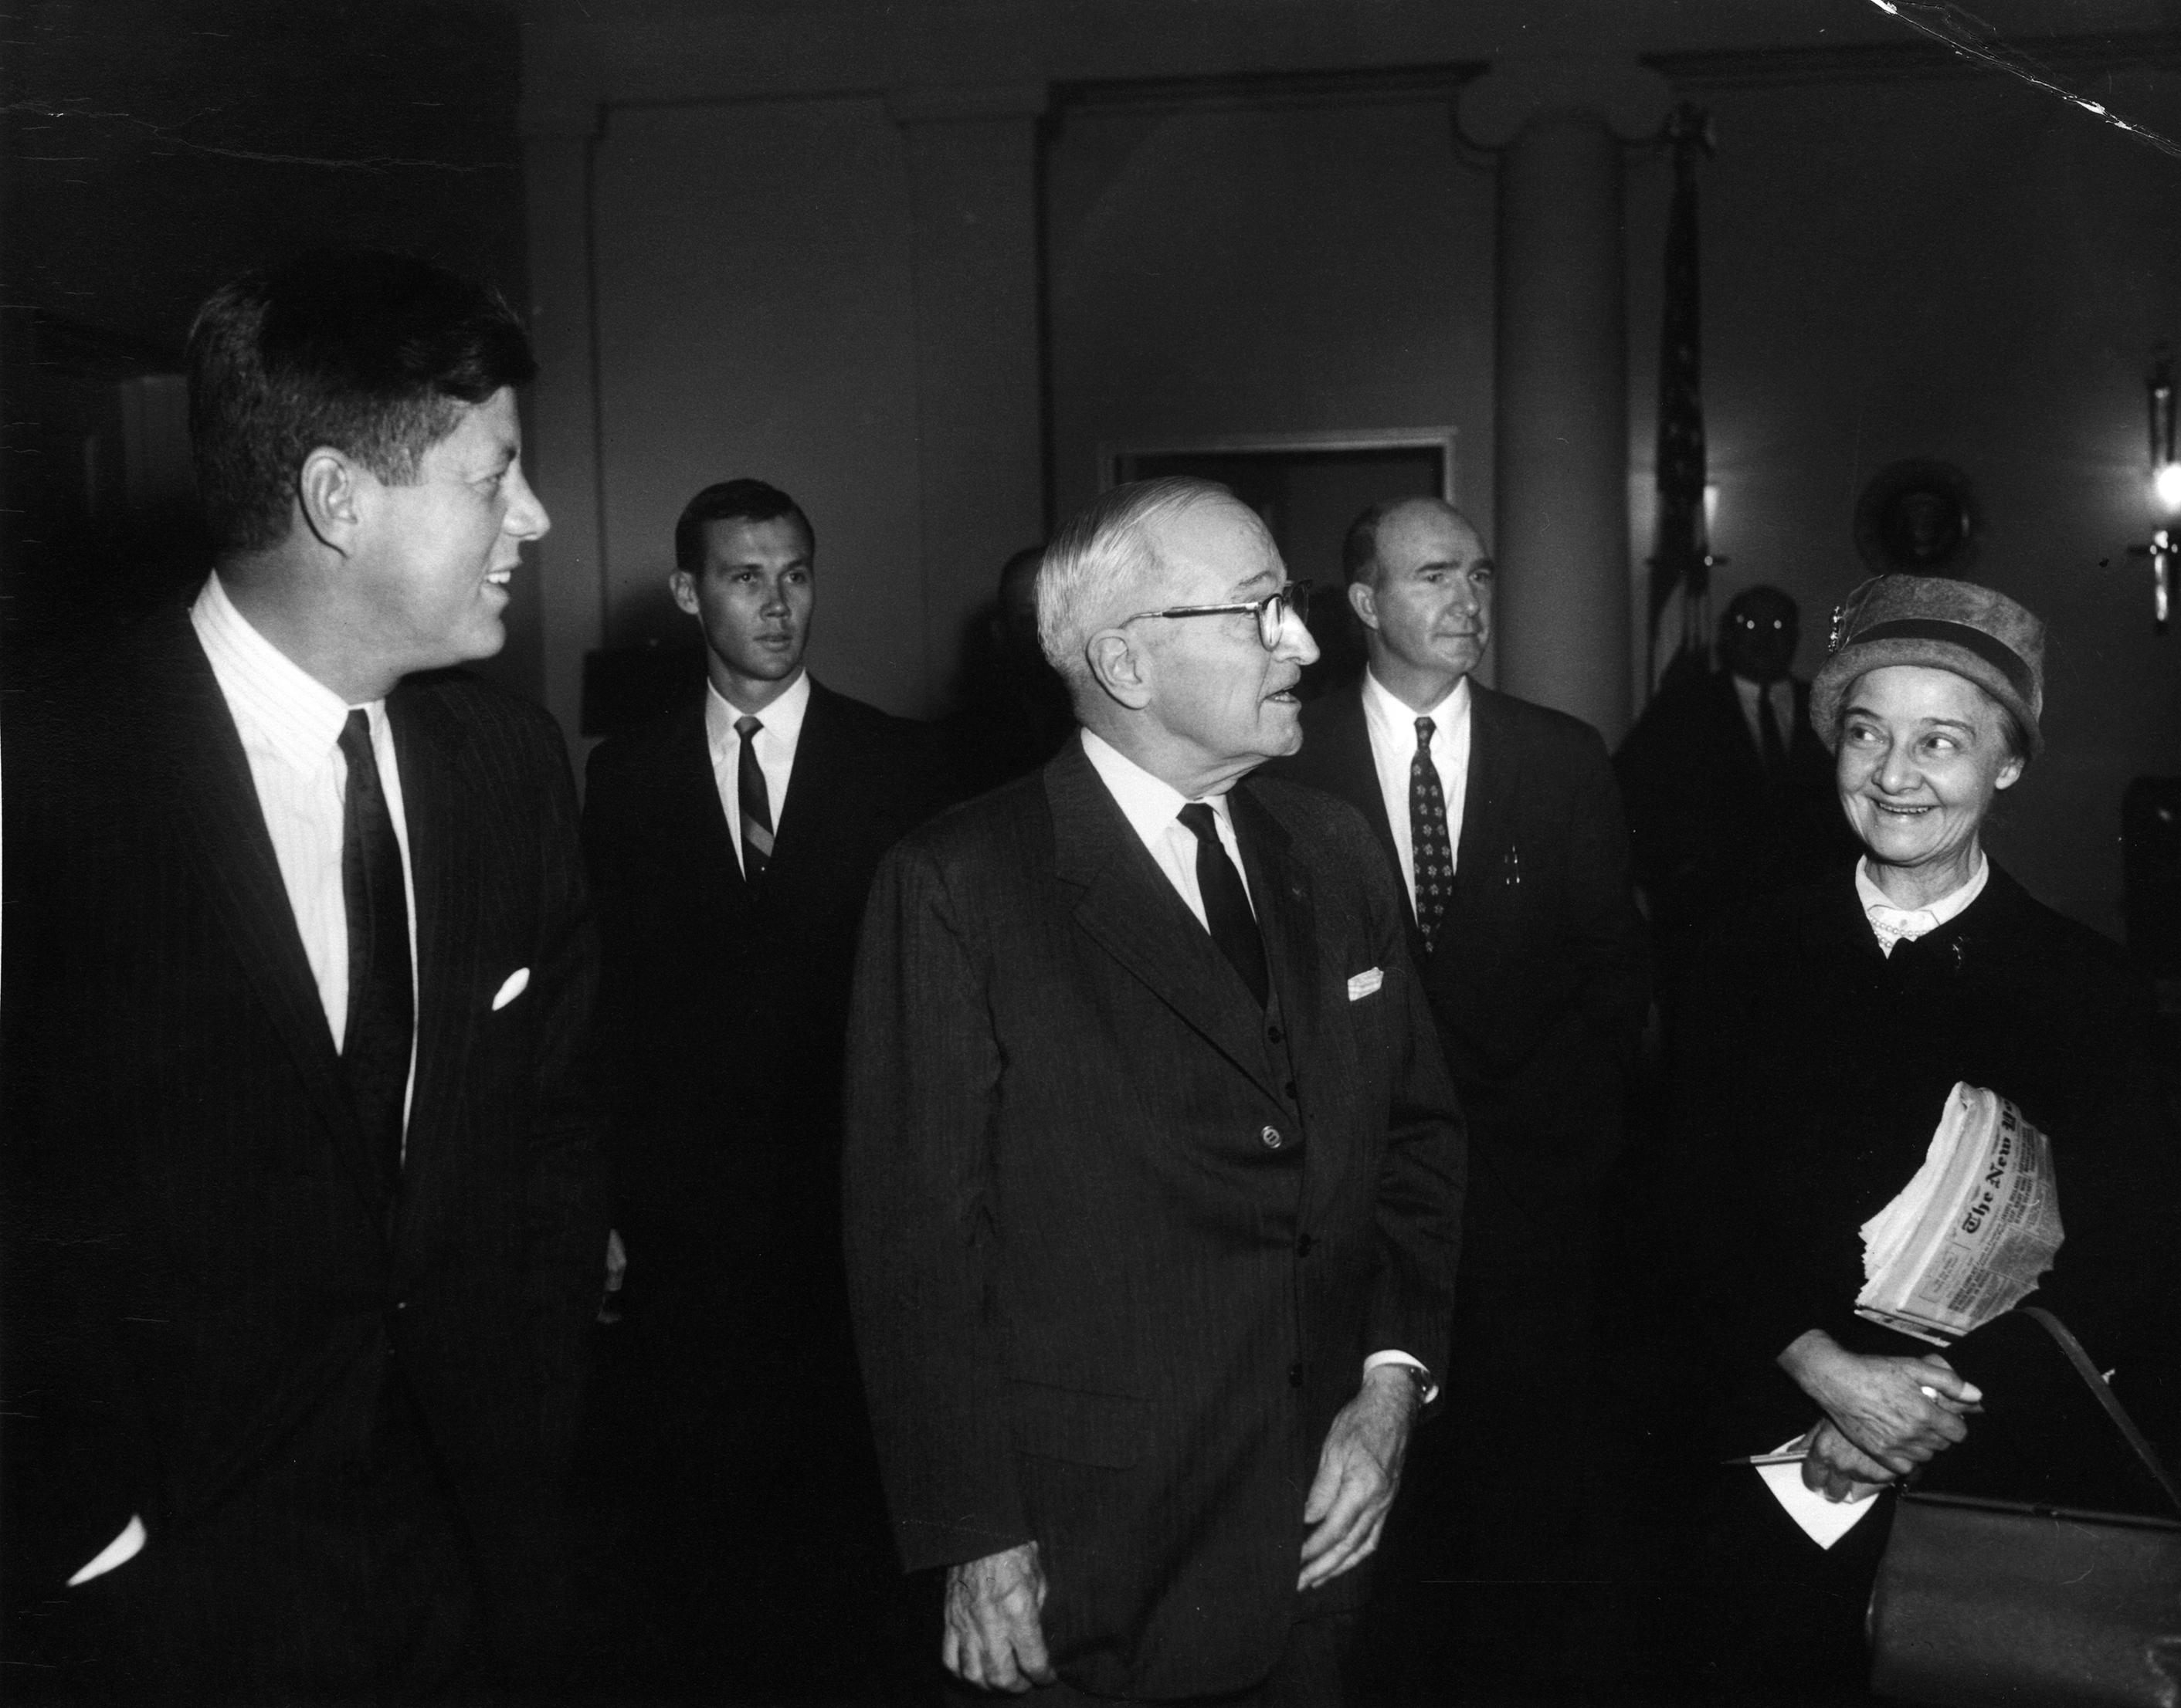 John Kennedy Profile In Courage Essay Contest